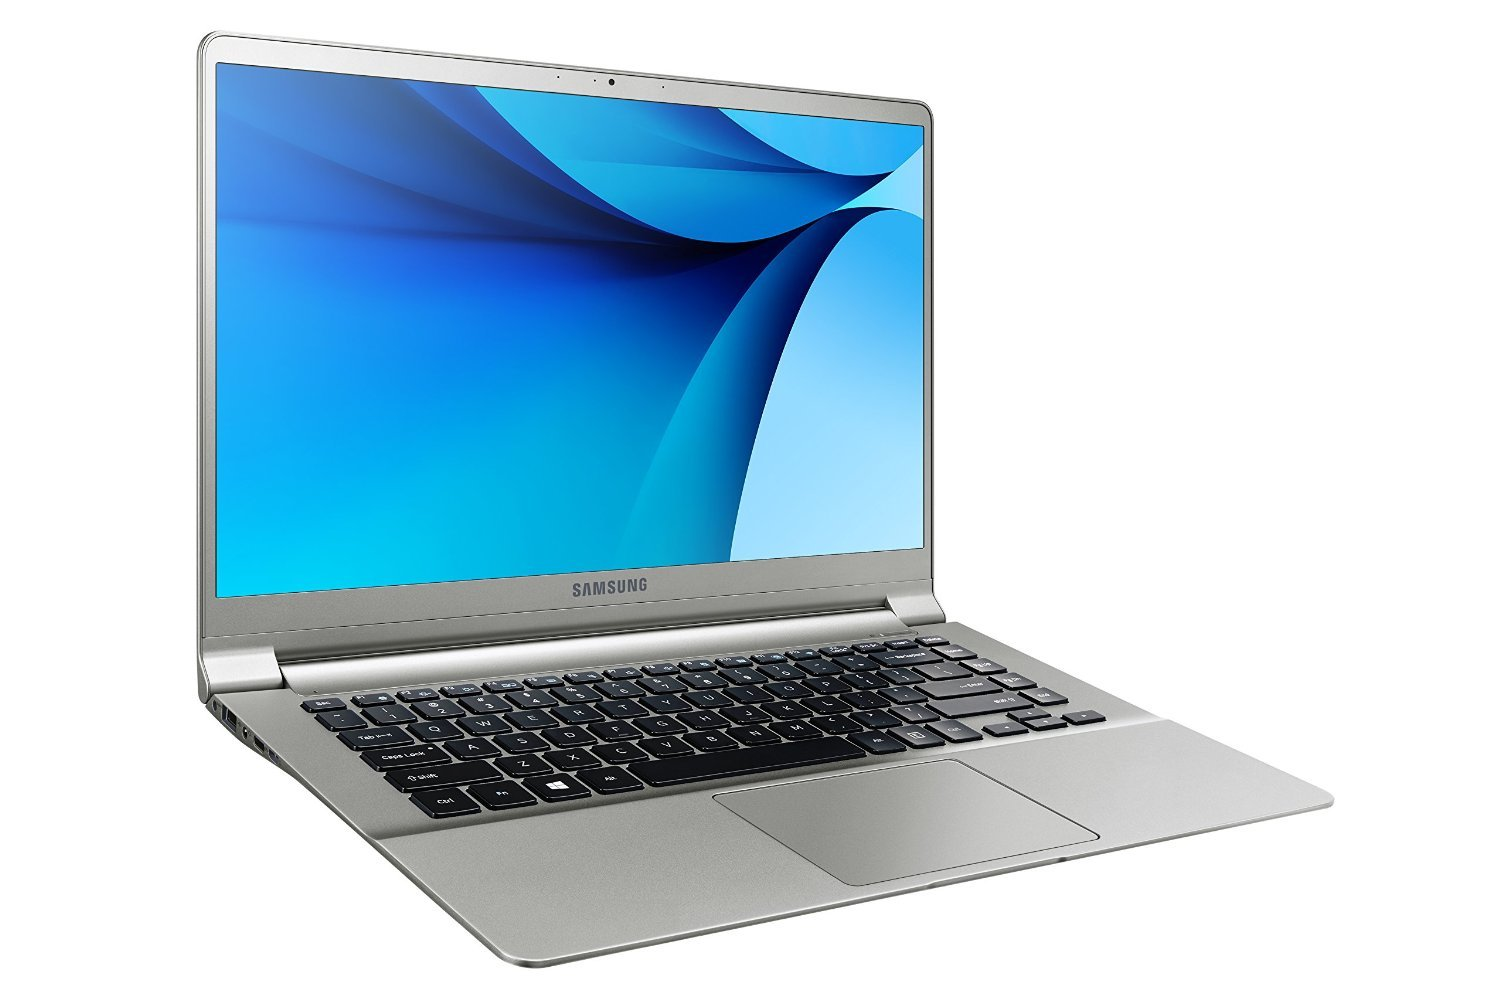 Samsung サムソン NP900X5L-K02US Notebook 9 15